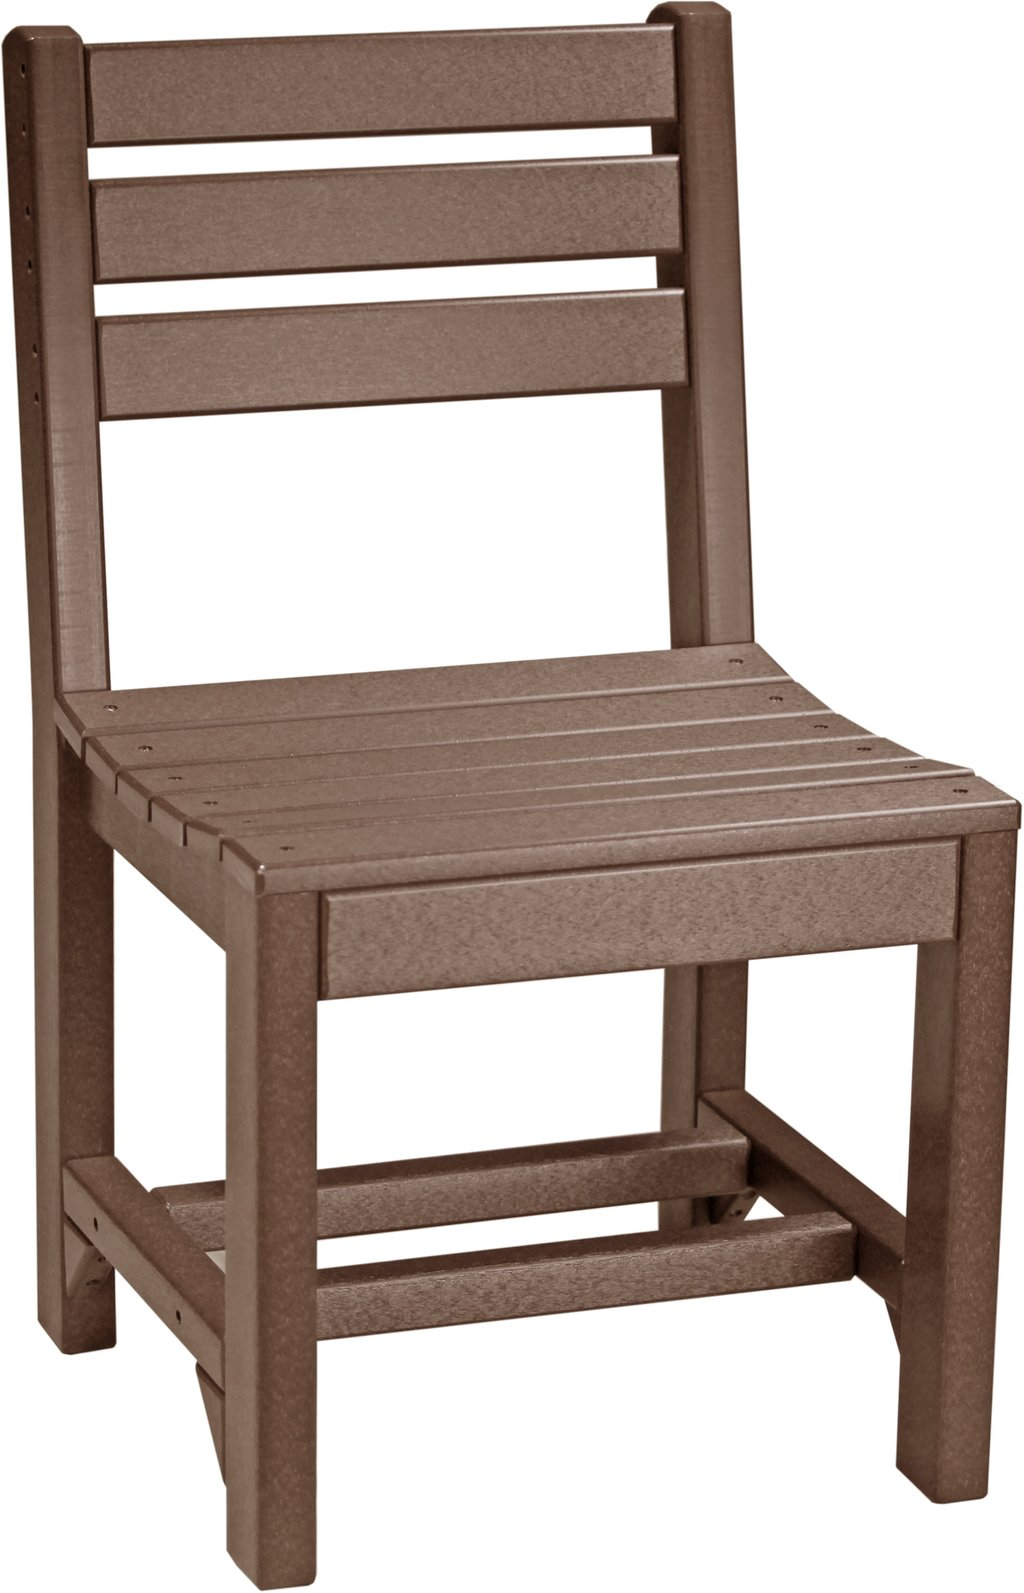 Image of: Dining Chair Height American Heritage Salma Black Slat Counter Height Zeno Counter Western Baby Bedding Nursery Theme